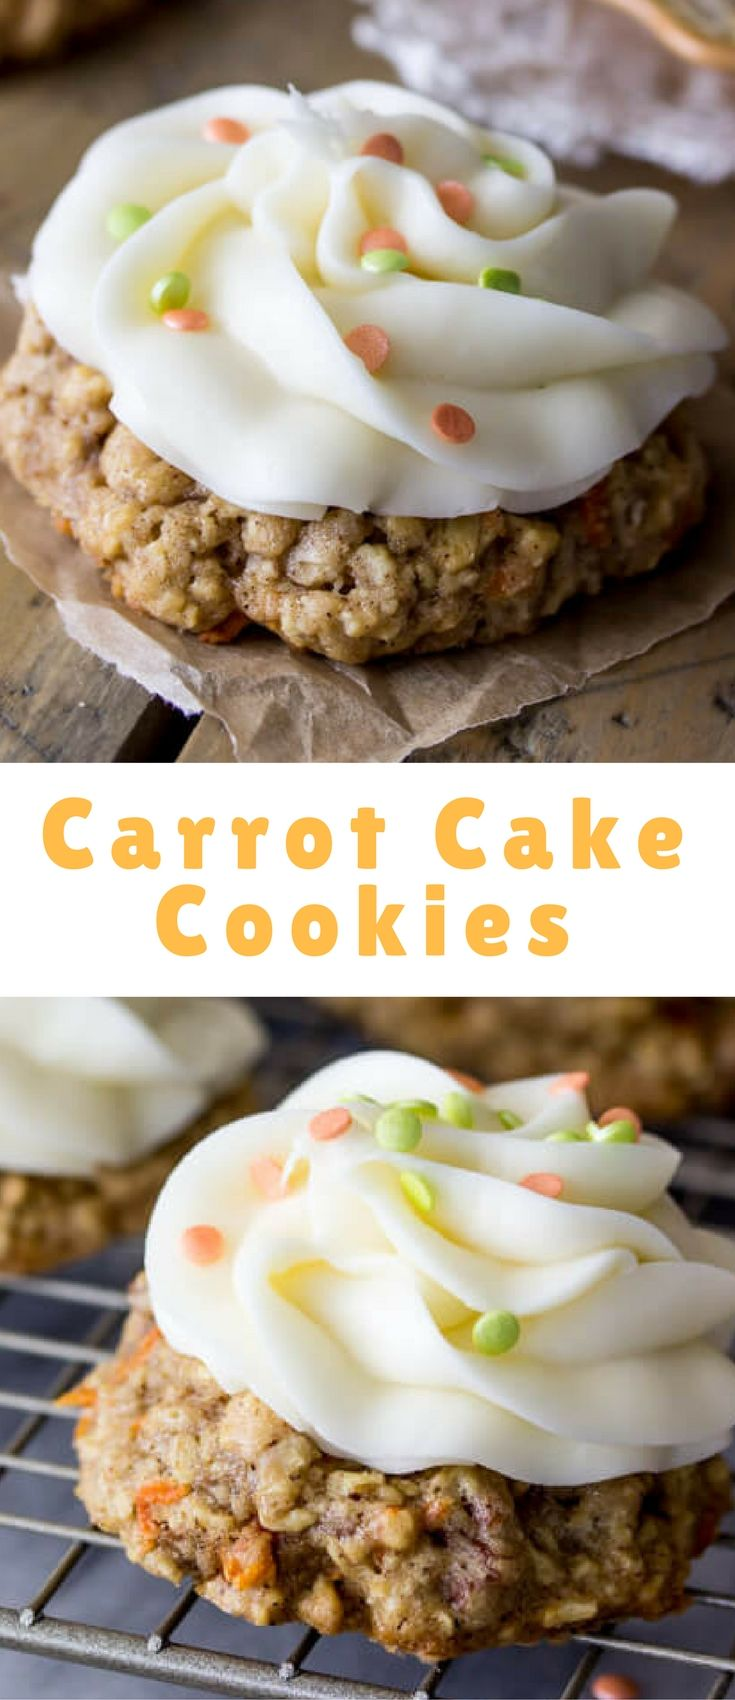 These carrot cake cookies are moist, oatmeal-based cookies that come together in a flash. They are topped with a generous topping of signature sweet cream cheese frosting (and sprinkles, if you're feeling festive). These bite-sized treats are much simpler than making a whole cake!